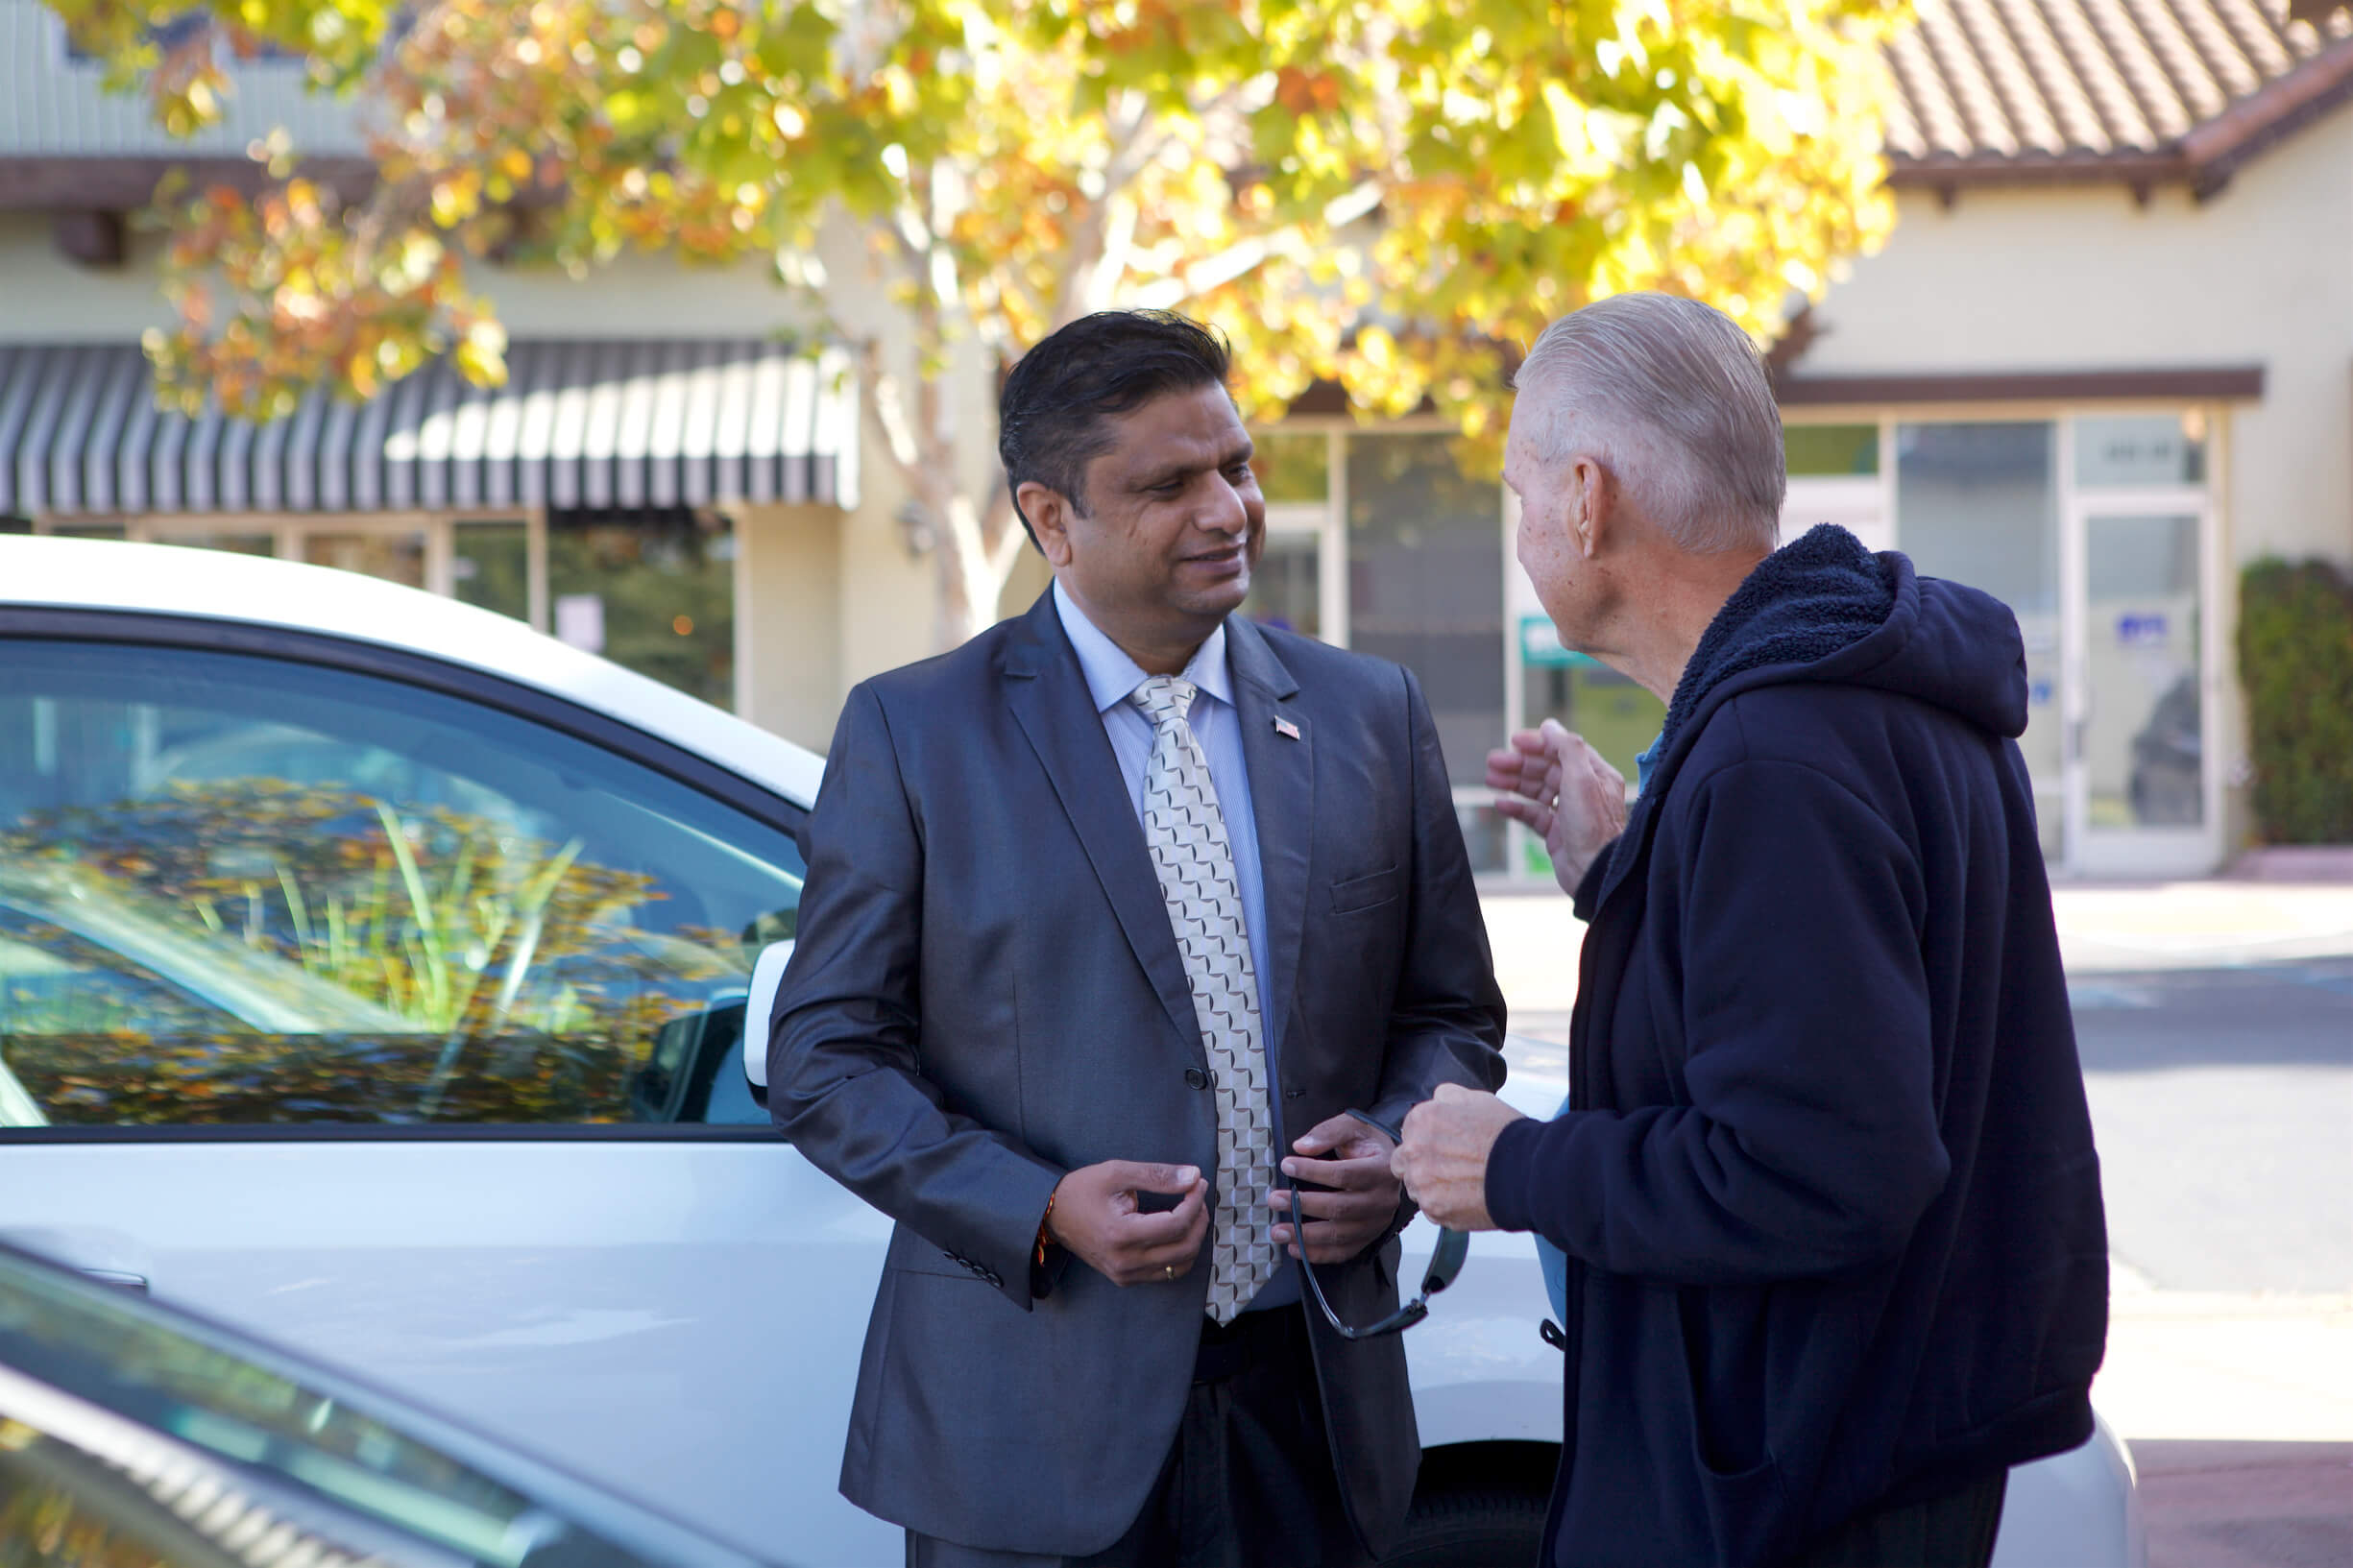 Ritesh Tandon in California Election